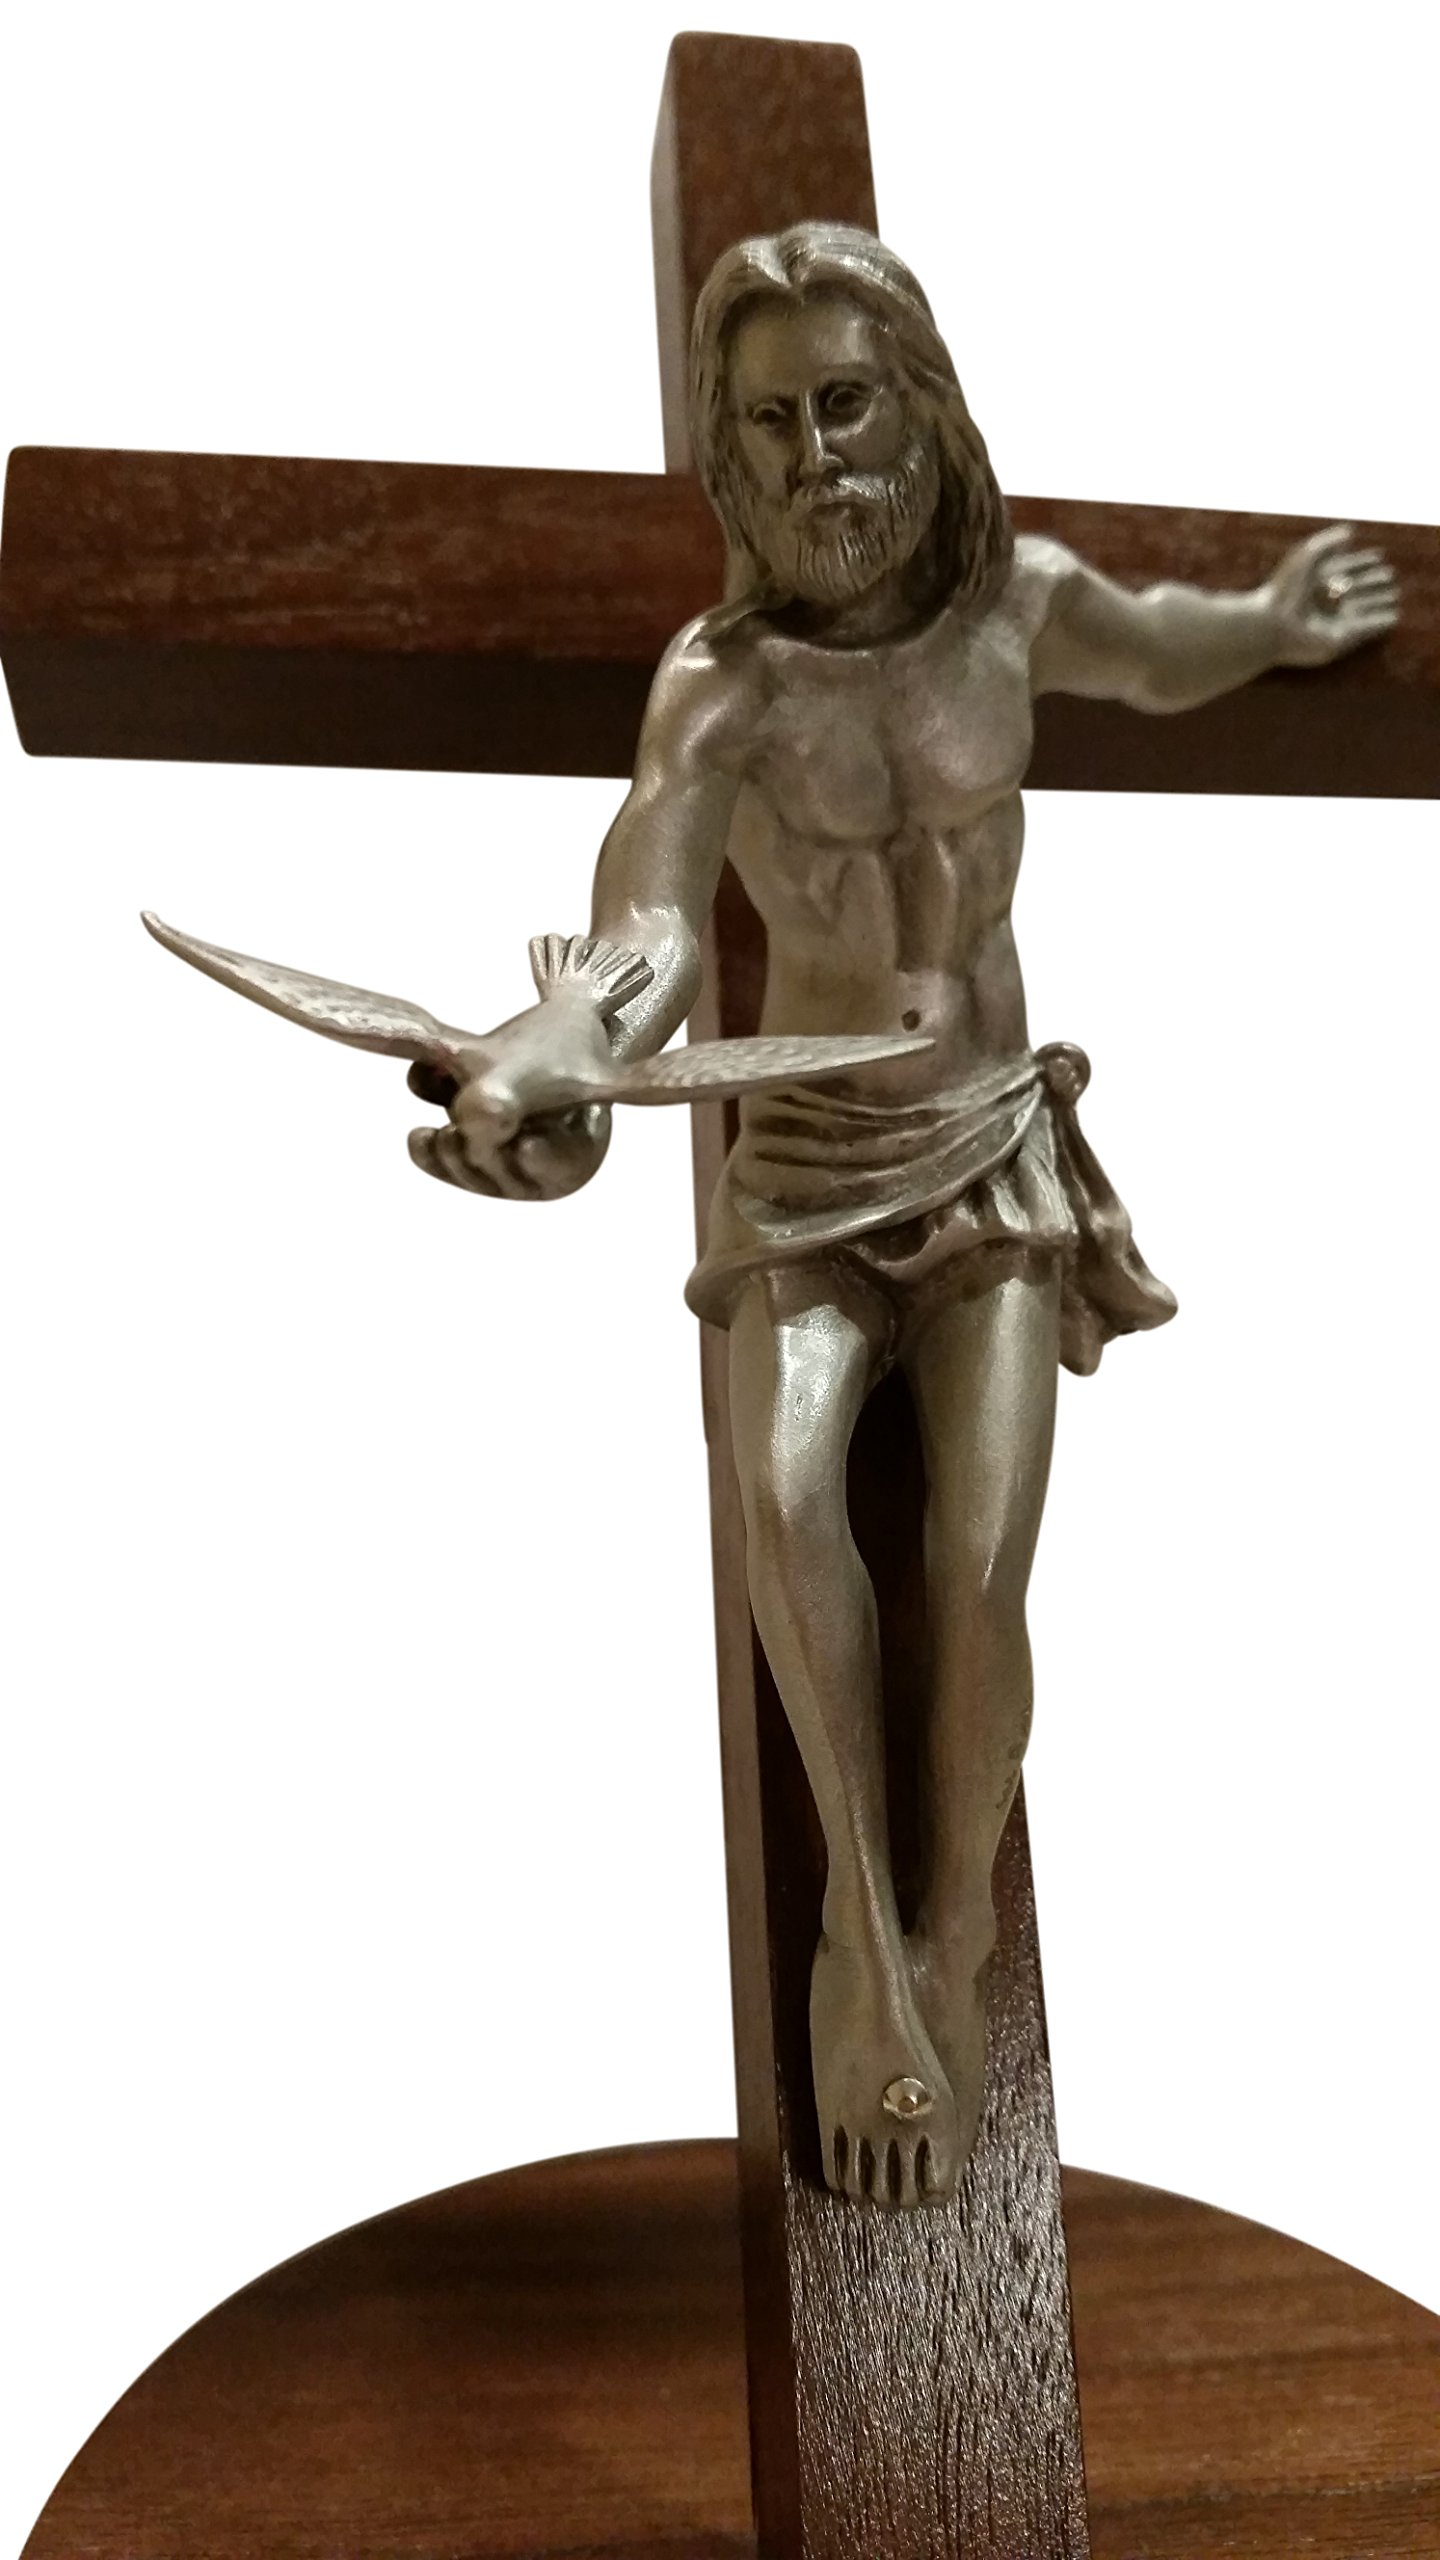 Inspire Nation Gift of the Spirit Walnut Wood Standing Wall Cross Crucifix with Removable Base for Hanging 8 inches by Inspire Nation (Image #4)